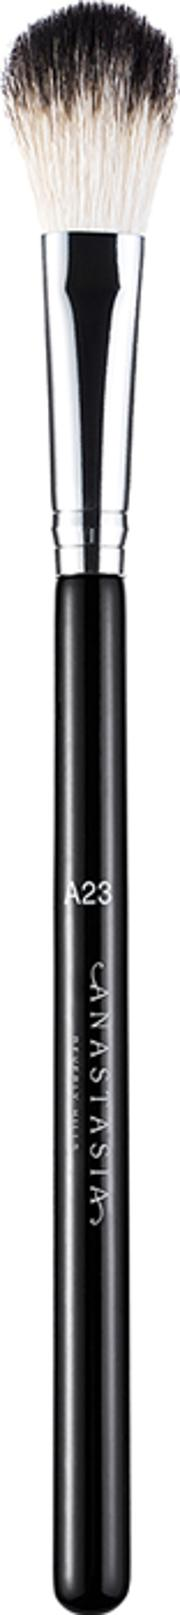 Beverly Hills Pro A23 Large Tapered Blending Brush